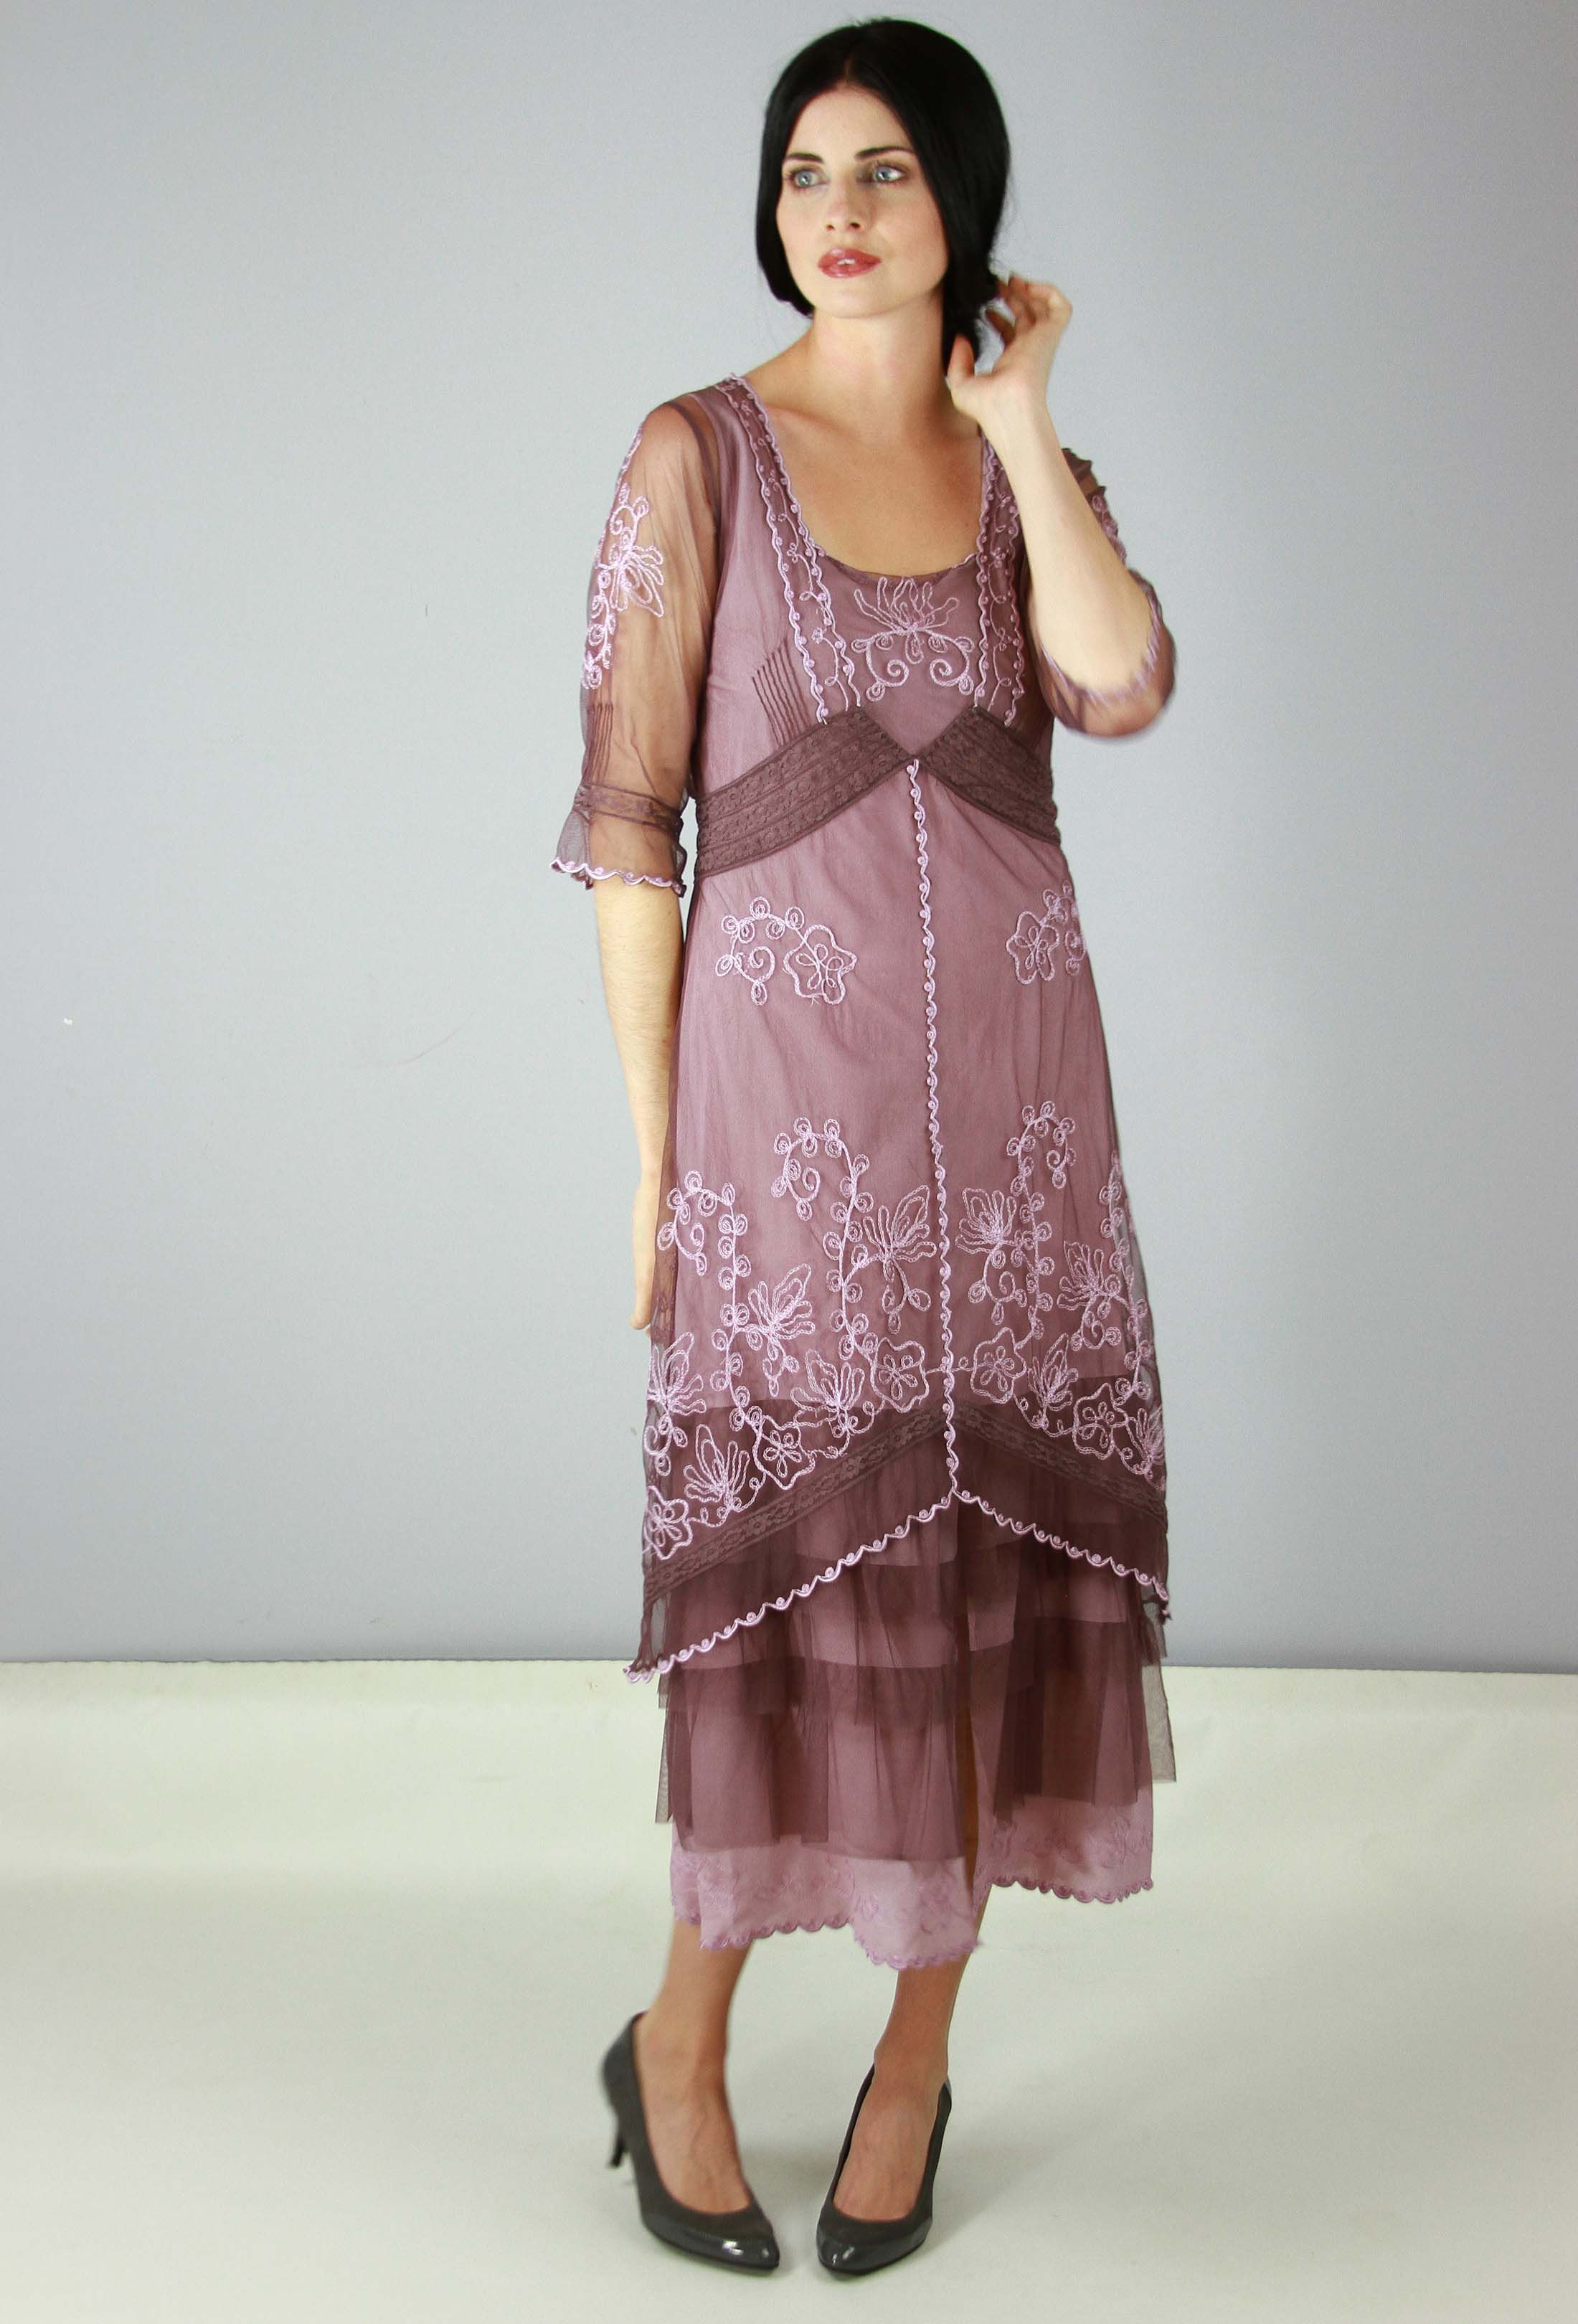 d369db84bf0de Buy Vintage Style Tea Length Dresses at the Wardrobe Shop - The Wardrobe  Shop. 1920s Plus Size Dress  Titanic Tea Party Dress in Mauve by Nataya   229.00 AT ...